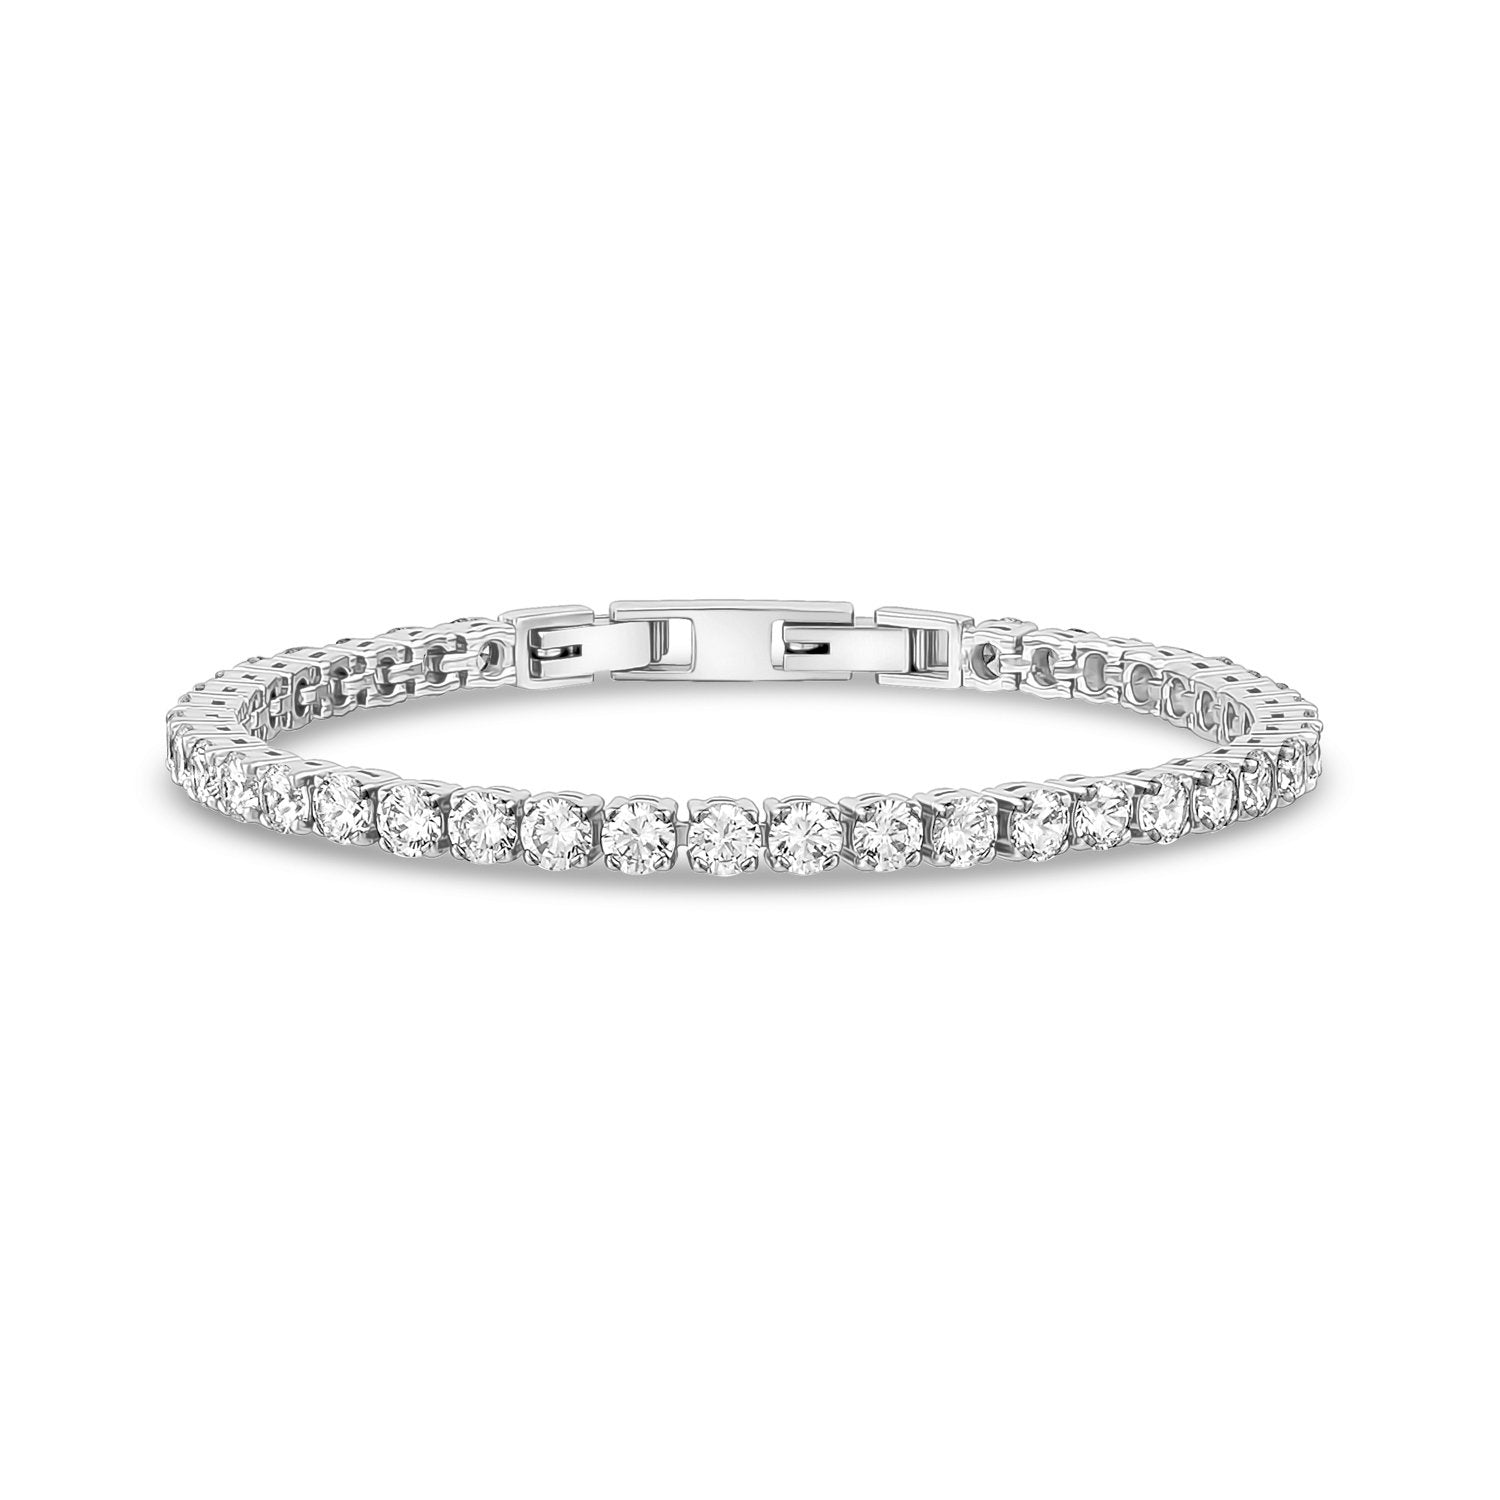 Women Bracelet - 4mm Cubic Zircon Stainless Steel Tennis Bracelet